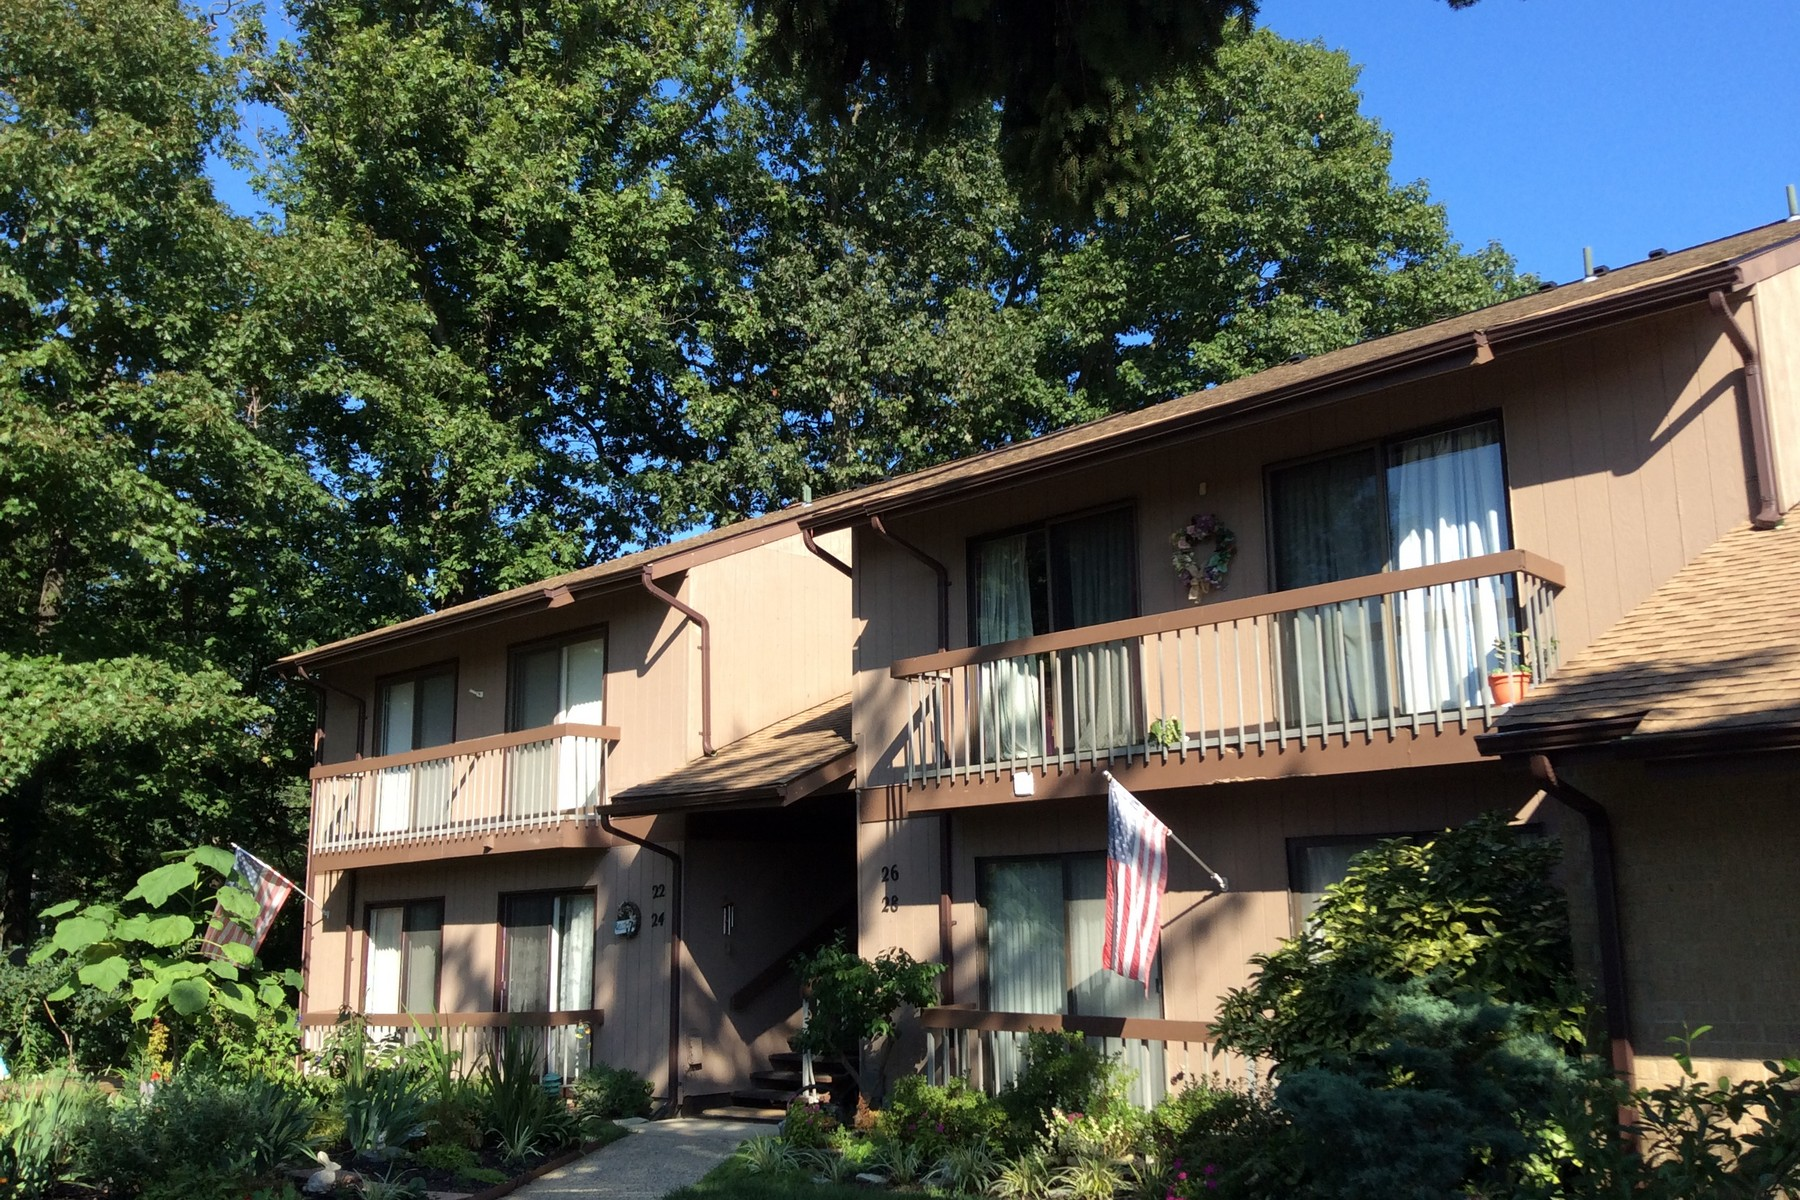 Condominium for Sale at LOCATION! LOCATION! LOCATION! 26 Augusta Ct, Red Bank, New Jersey 07701 United States